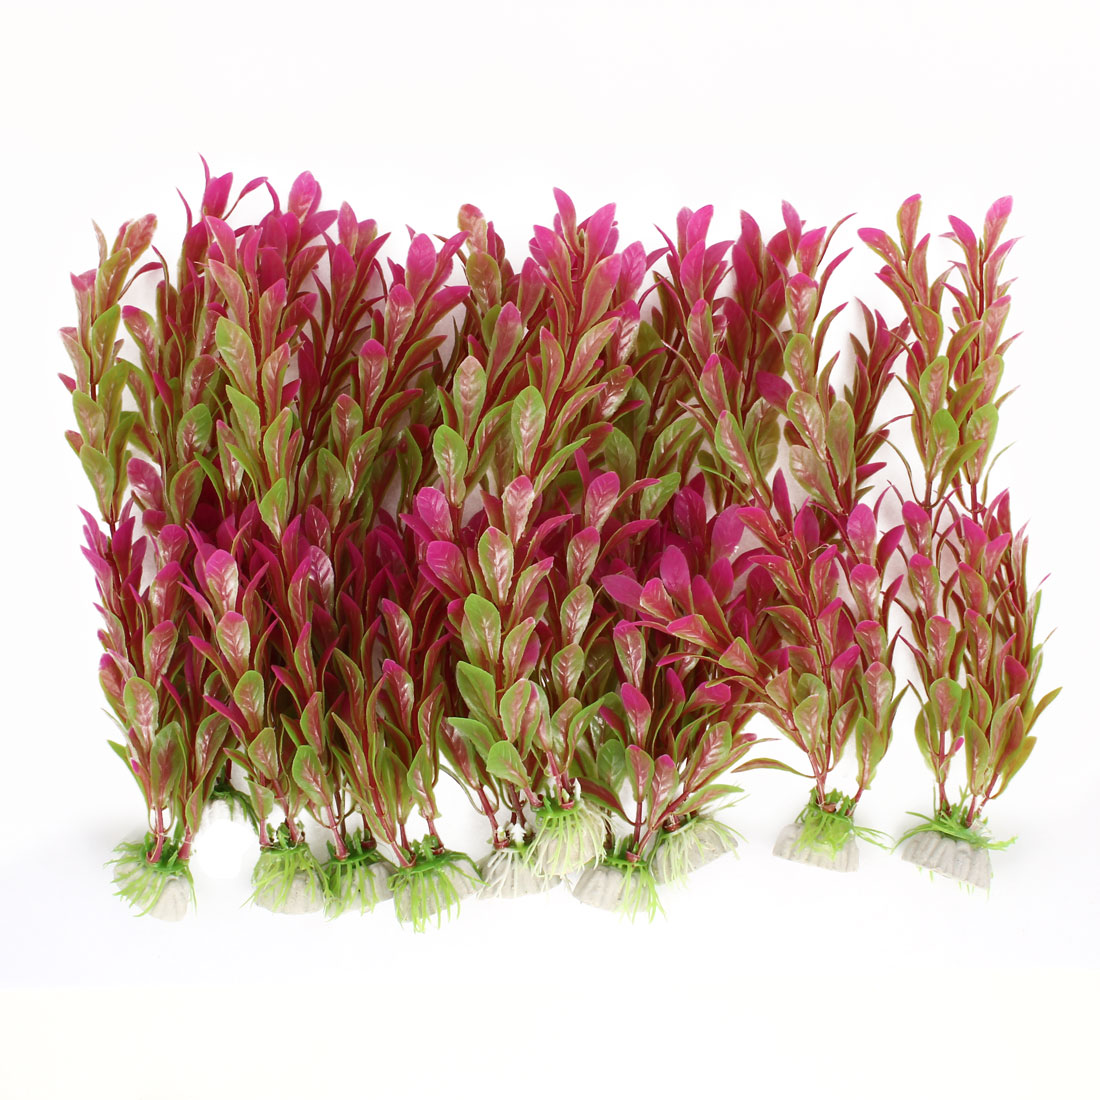 "Fish Tank Landscaping Emulational Water Plant Grass Decor Fuchsia Green 9.5"" Height 10pcs"